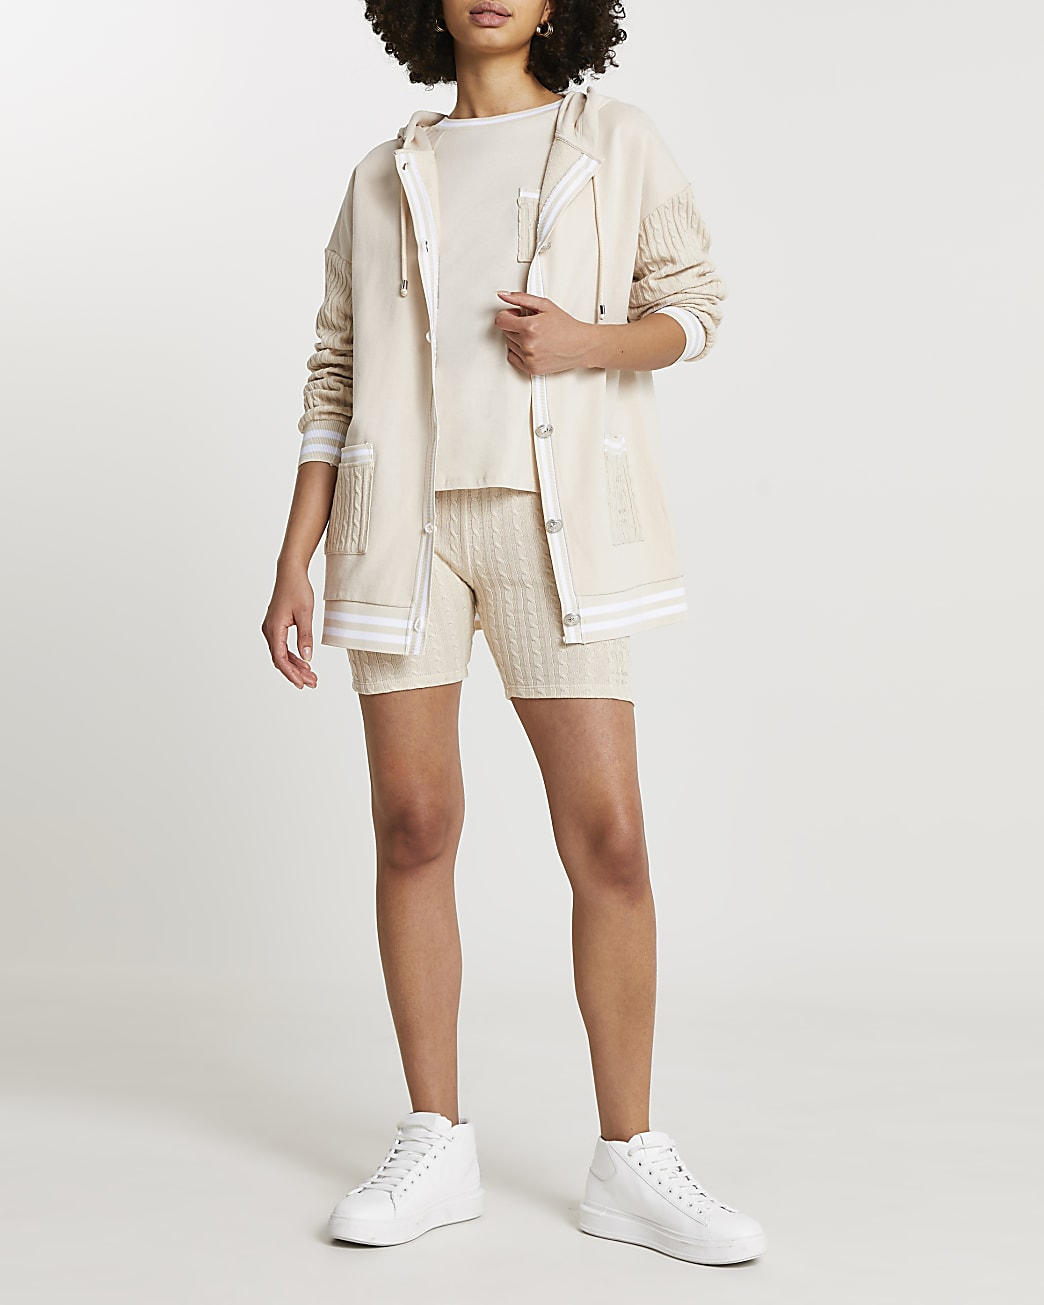 Beige cable knit jersey tennis shorts